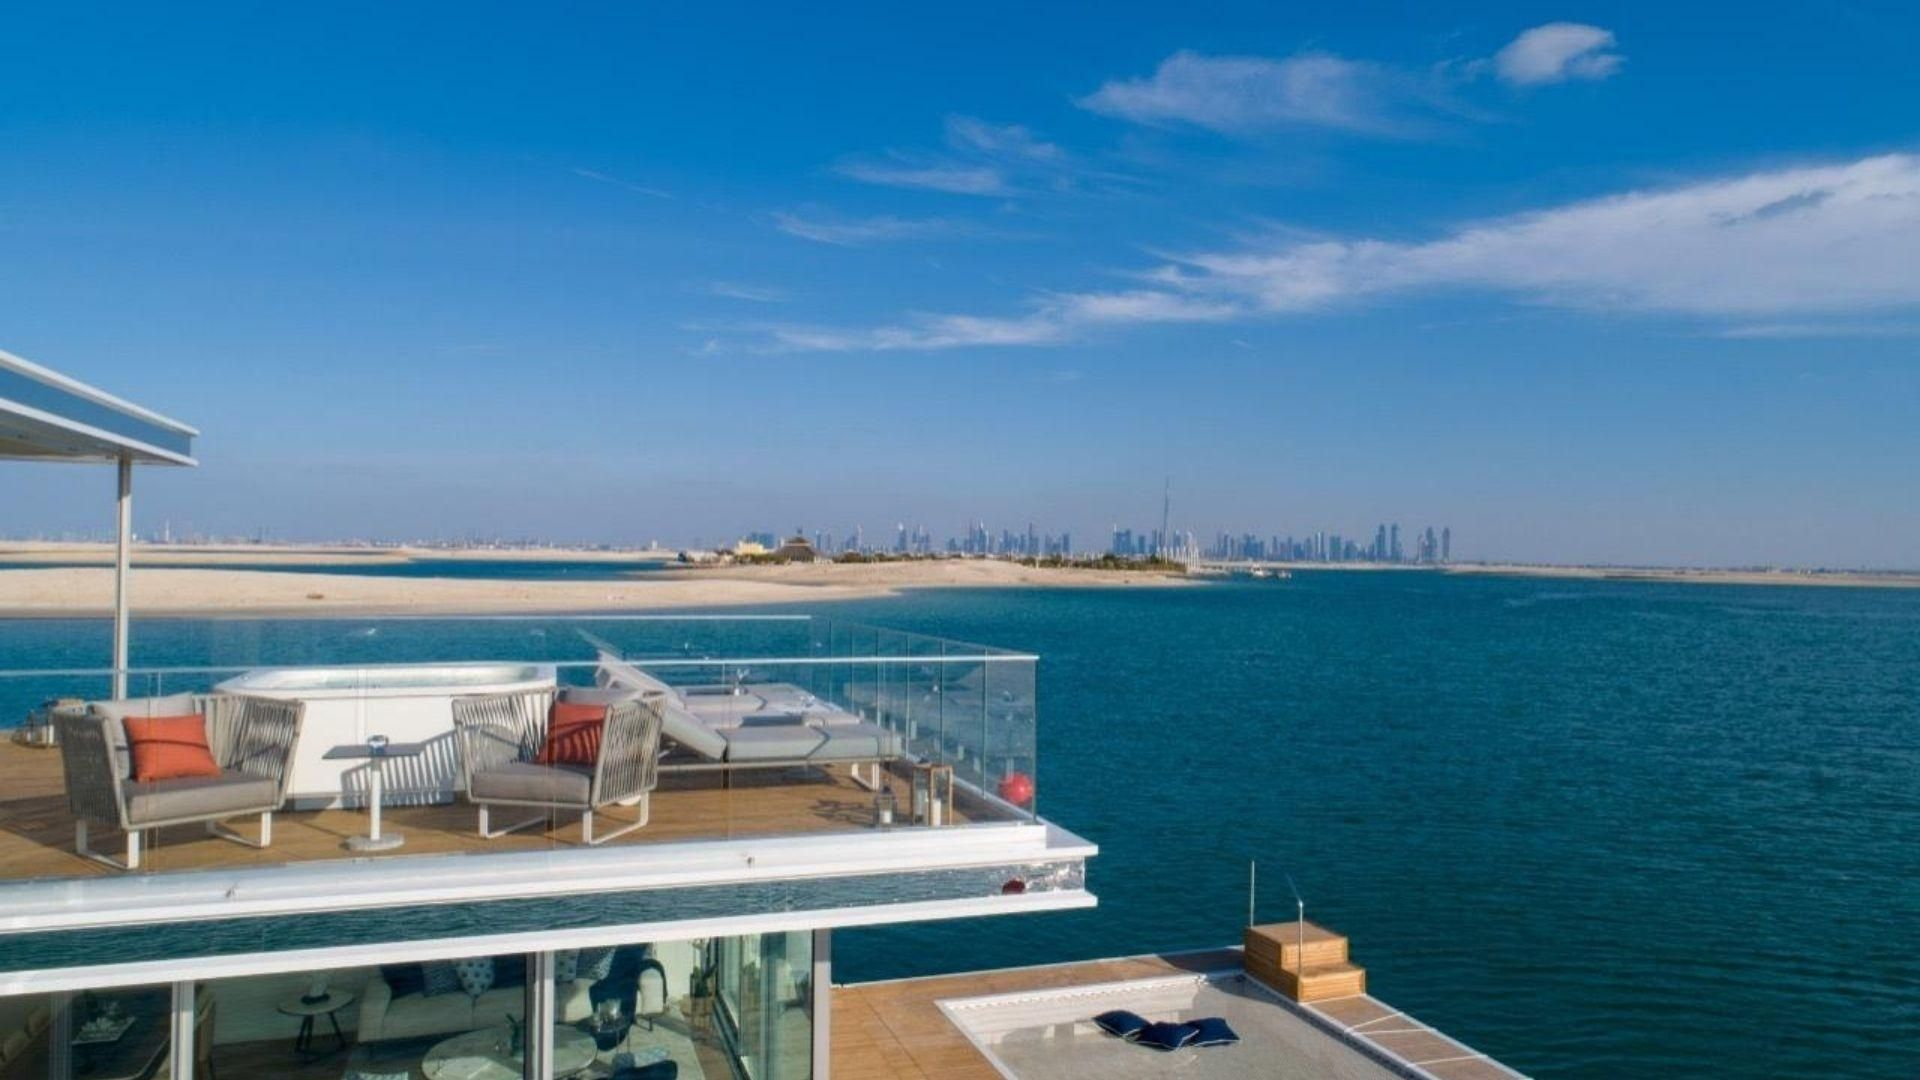 10 - Live like Royalty in These Amazing Luxury Homes in Dubai